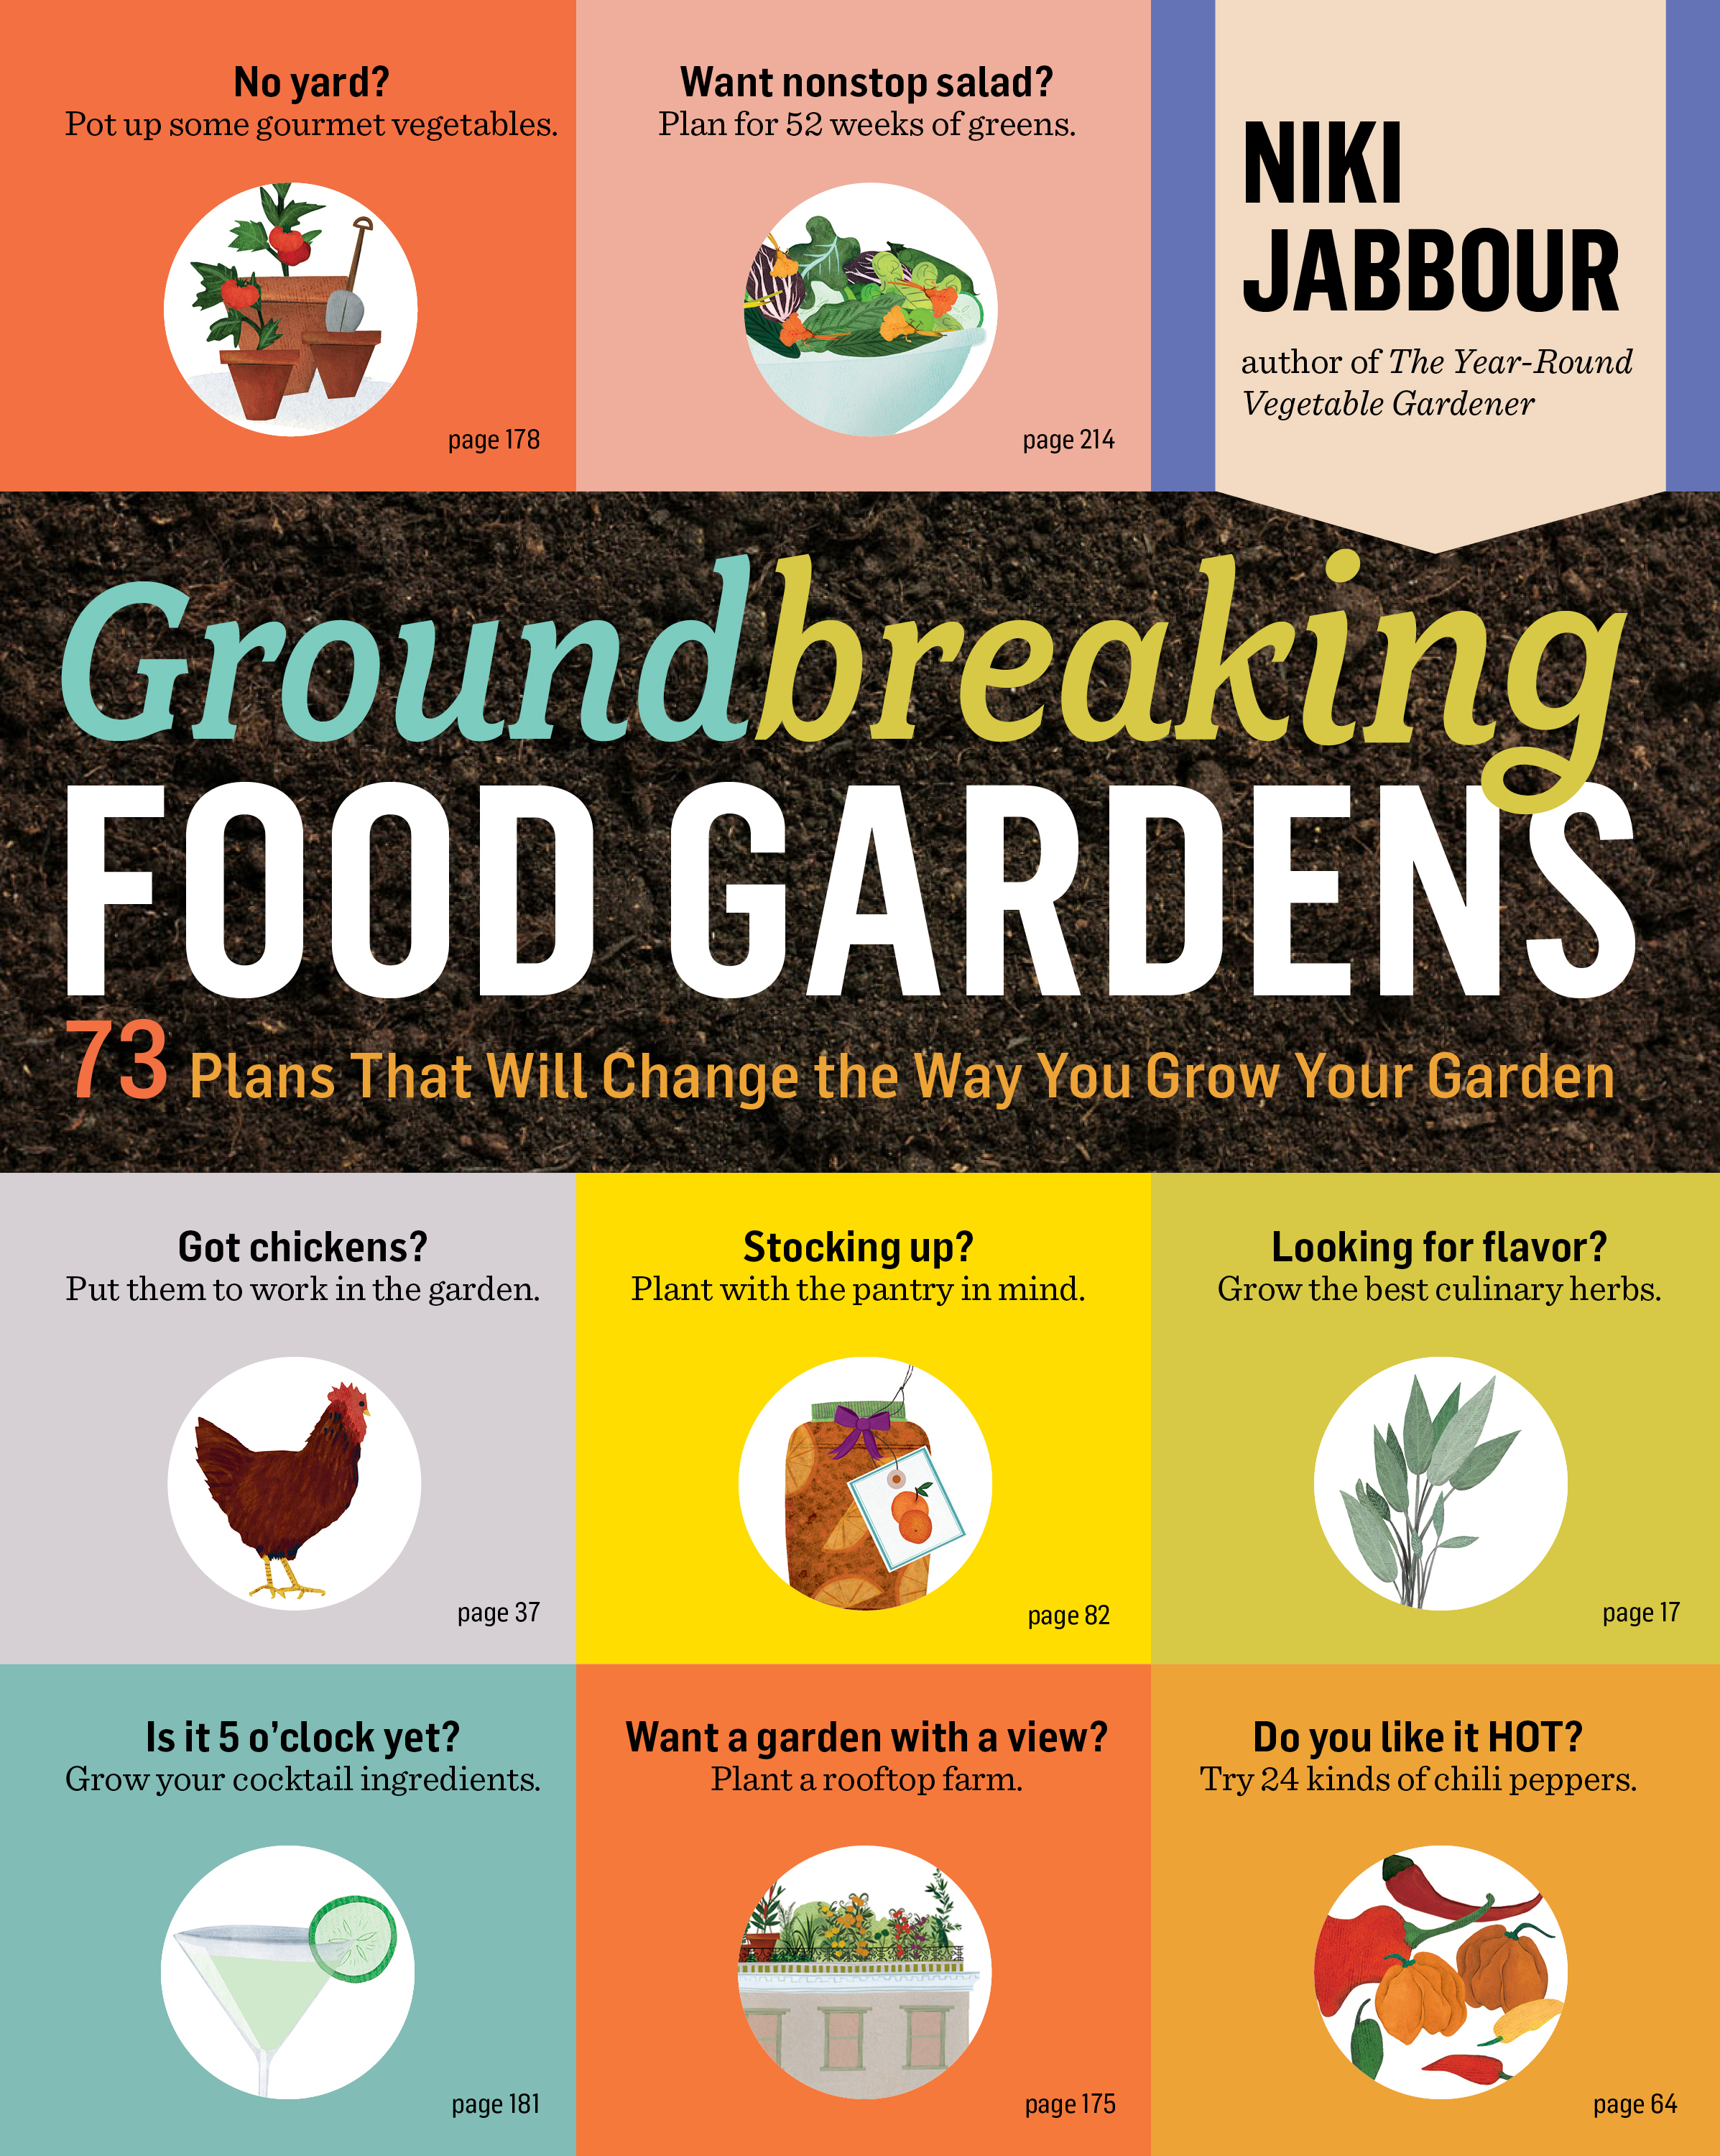 Groundbreaking Food Gardens 73 Plans That Will Change the Way You Grow Your Garden - Niki Jabbour